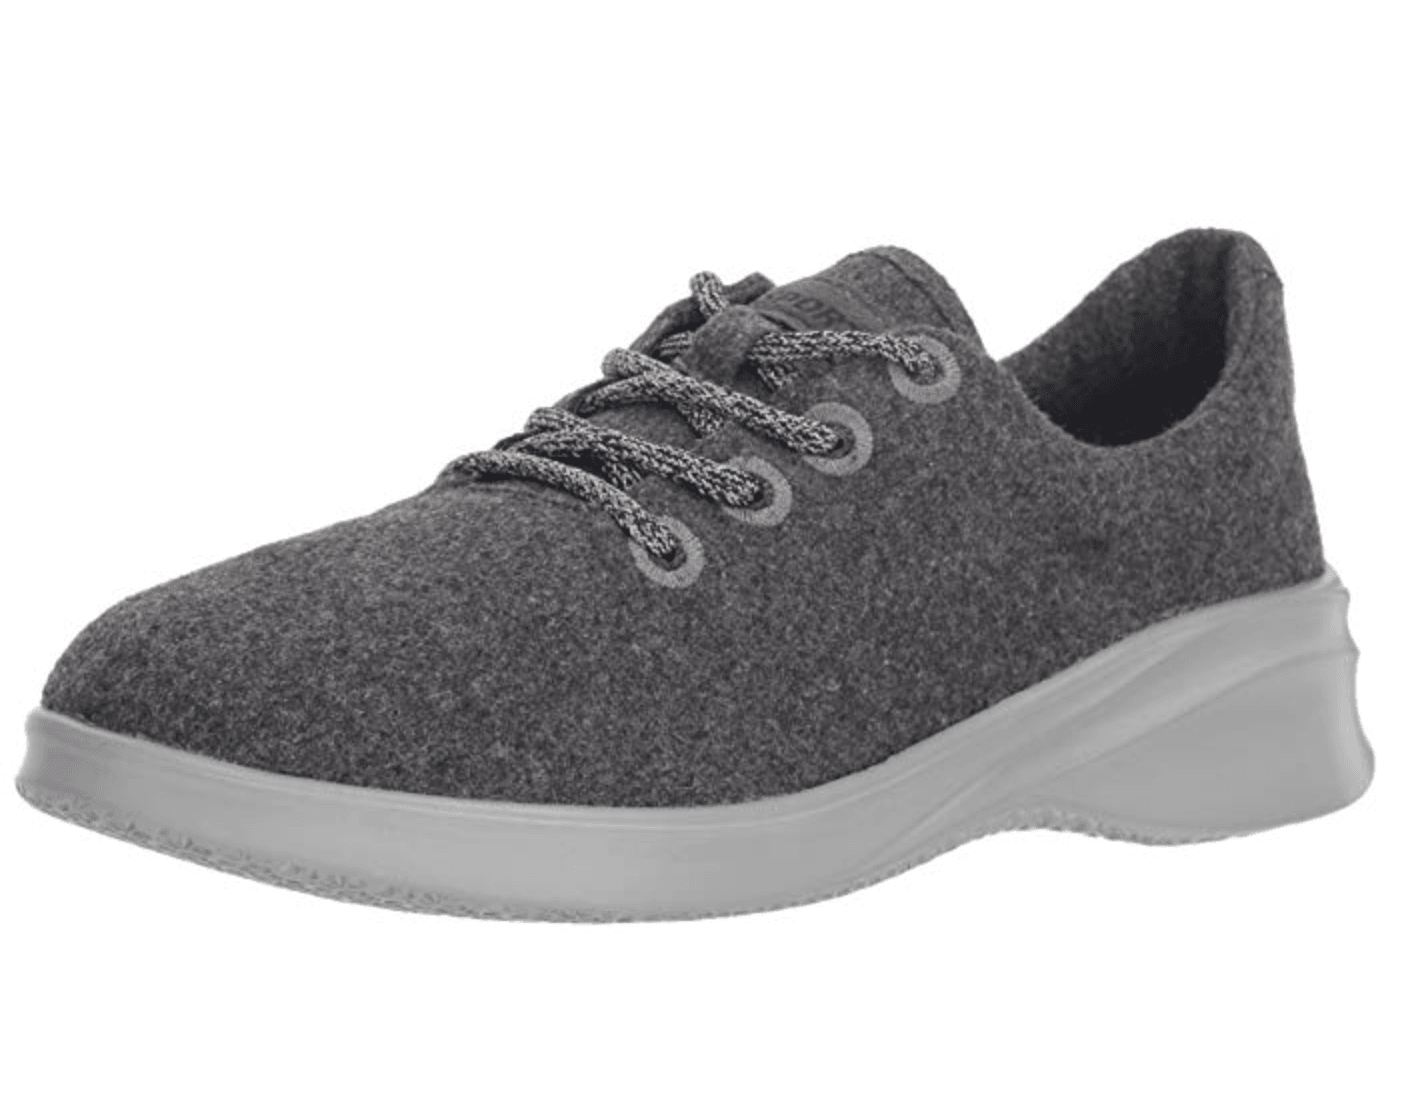 The Best Allbirds Wool Runner Dupes You Can Buy - Allbirds Shoes - Allbirds Sneakers - Allbirds Dupes - Allbirds Price - Allbirds Wool Runners - Allbirds Womens Sneakers #allbirds #sneakers